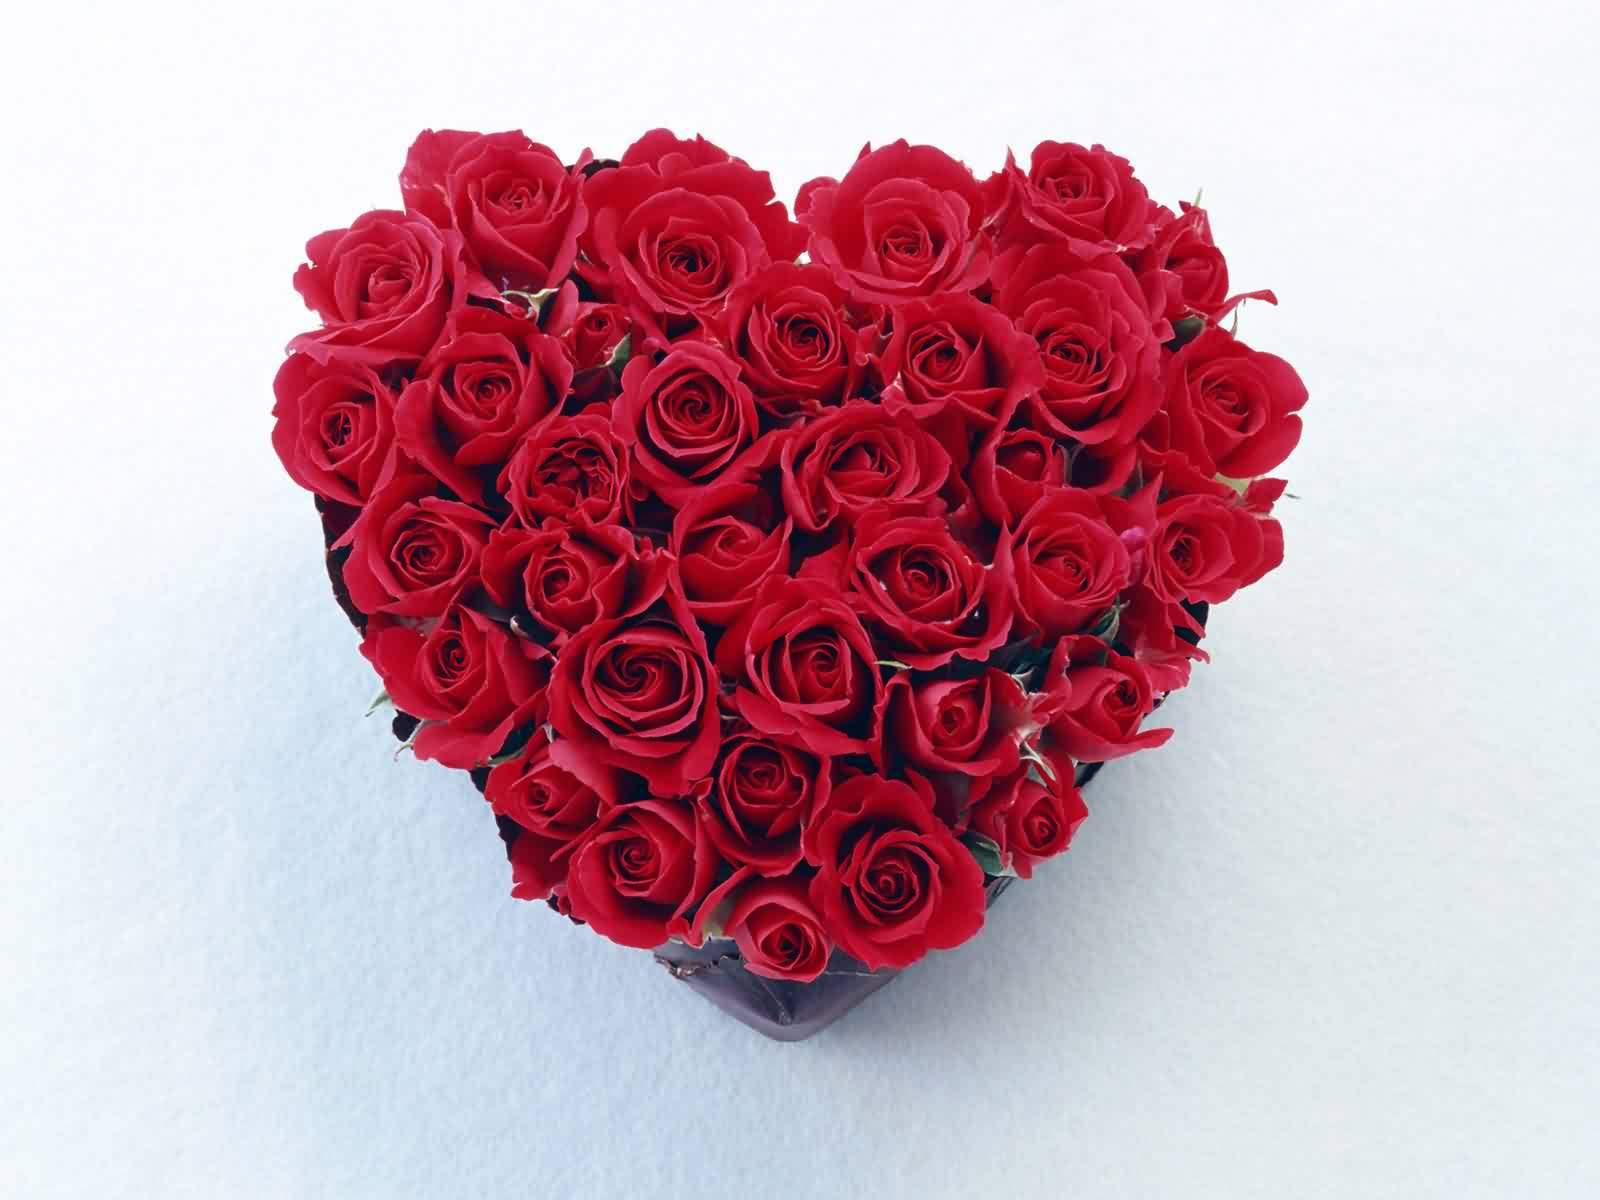 Heart made with red roses - Pics of roses and hearts ...